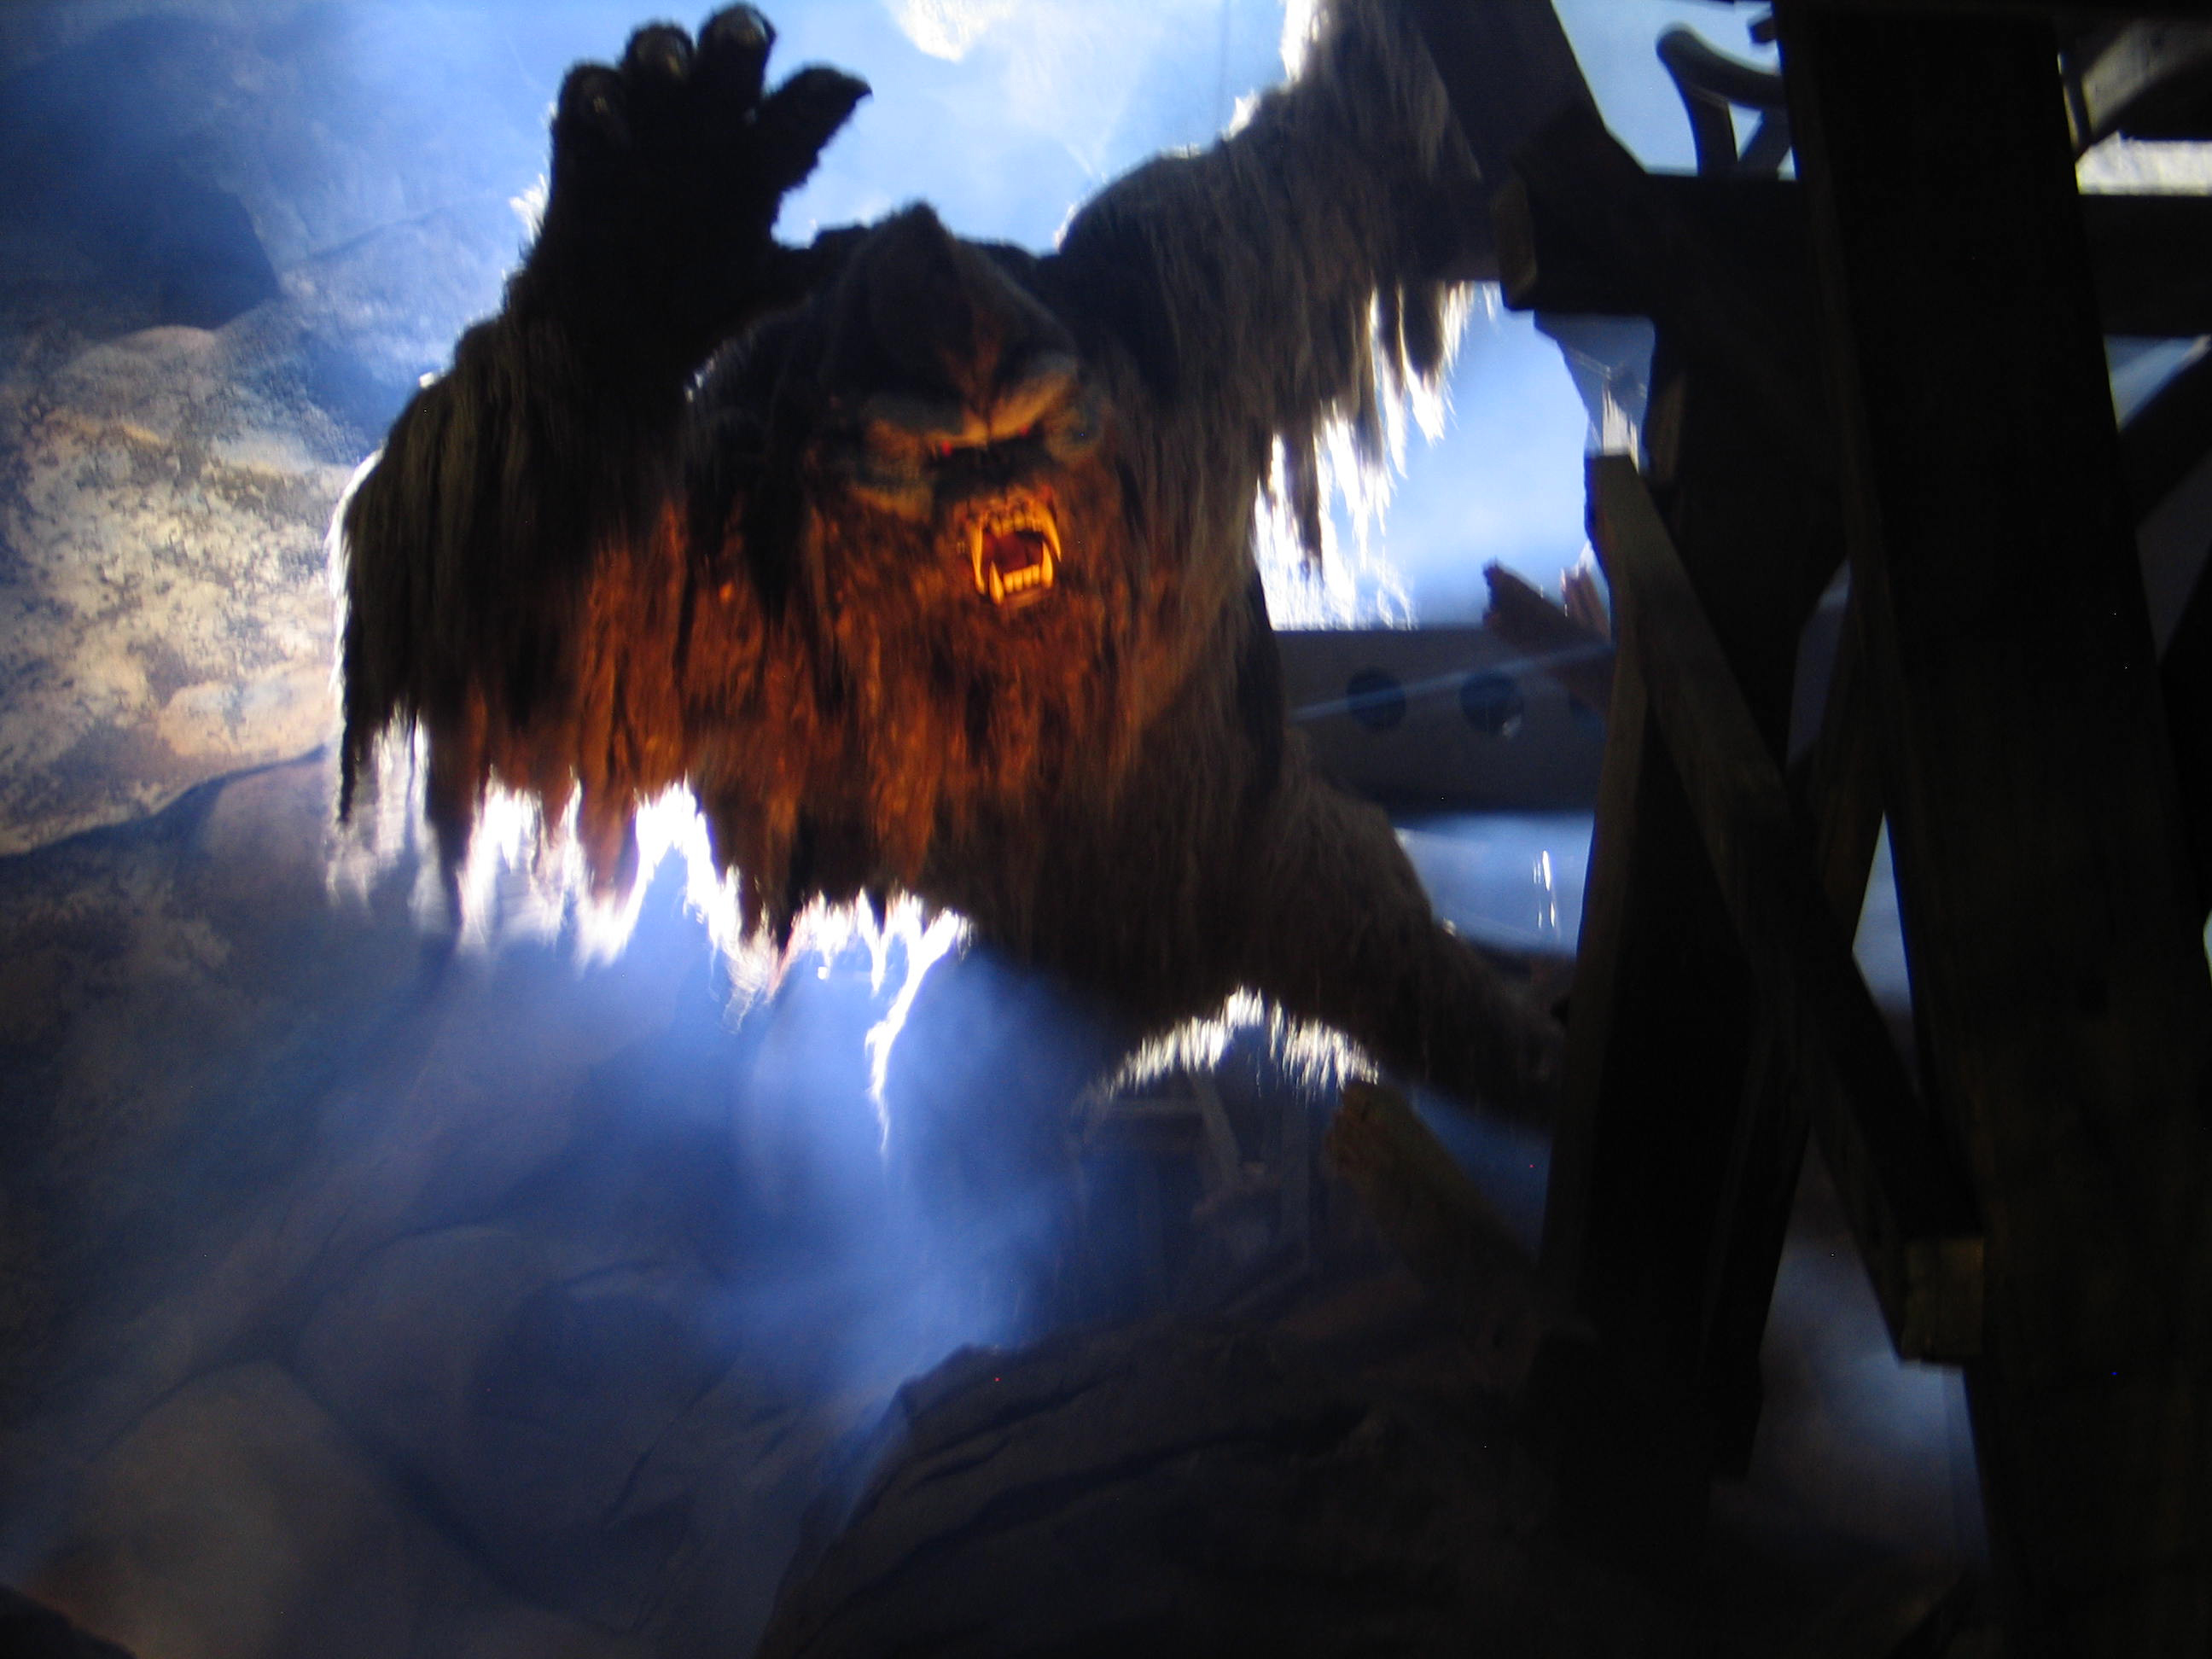 Possible Expedition Everest Tie In With New Disney Movie in the Pipeline